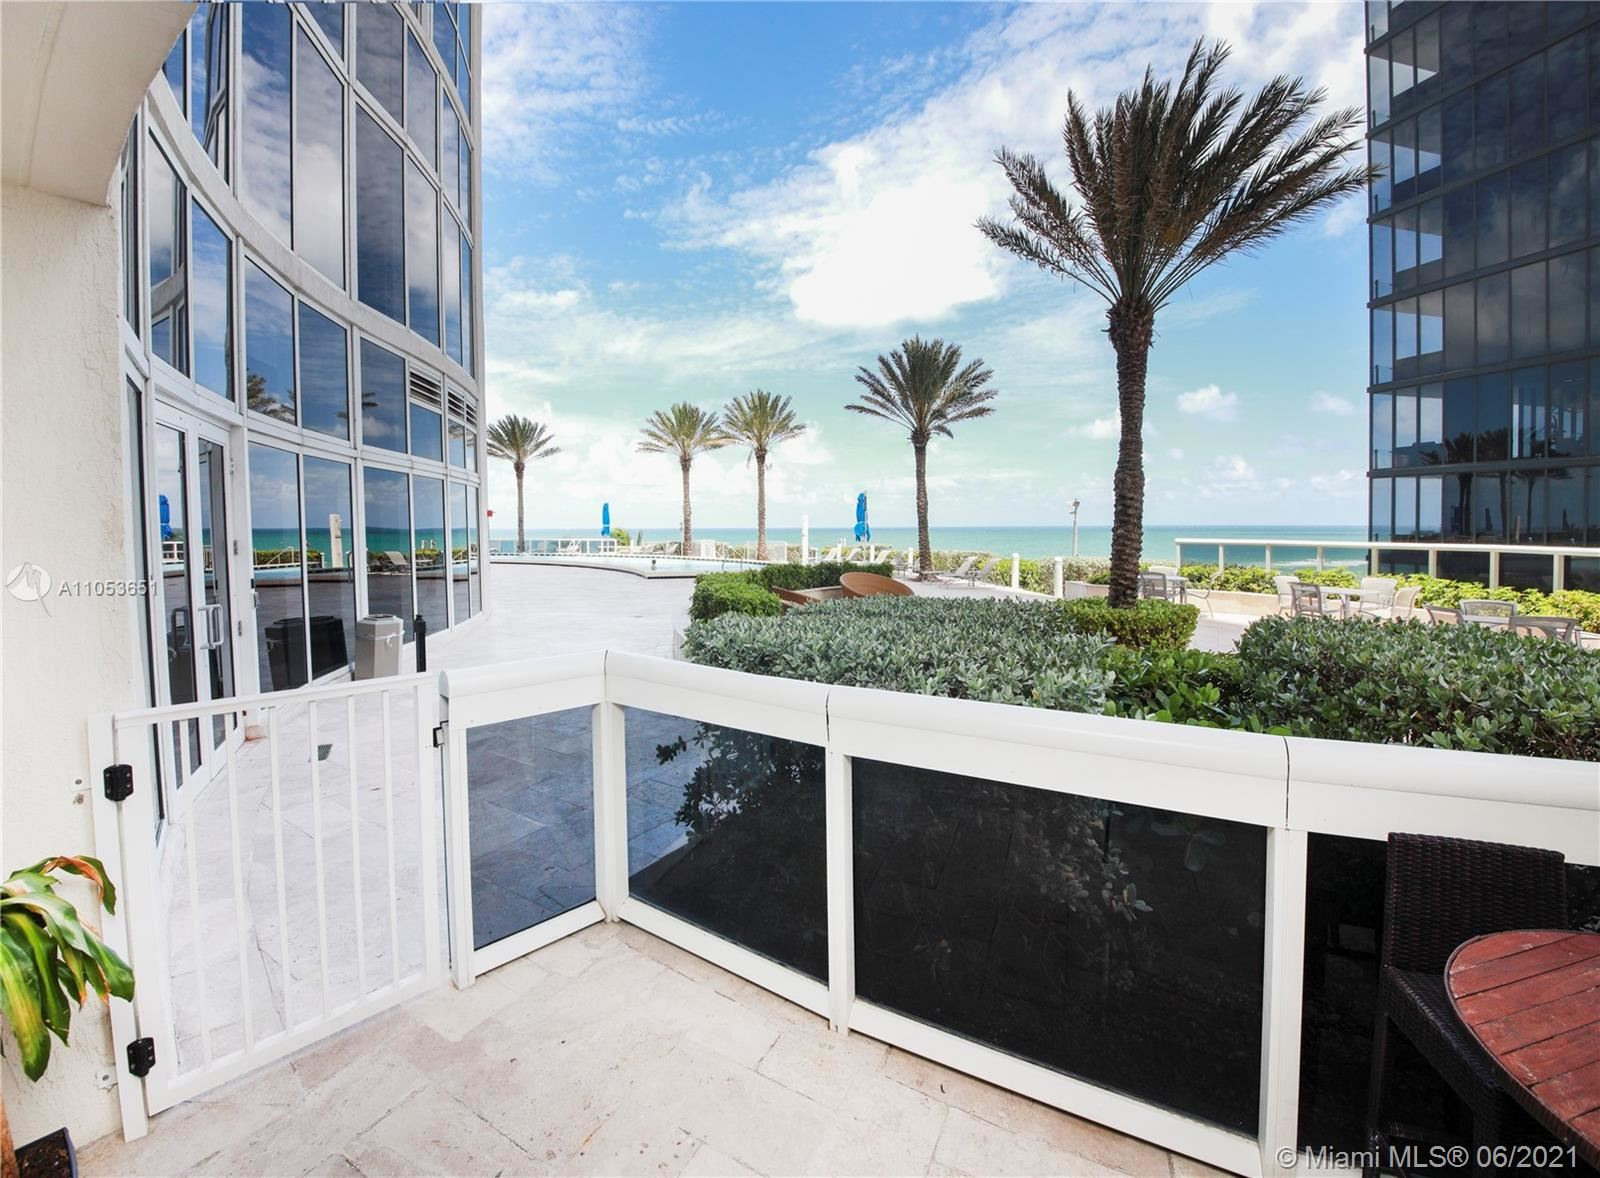 17201 Collins Ave #504, Sunny Isles, FL 33160 - #: A11053651